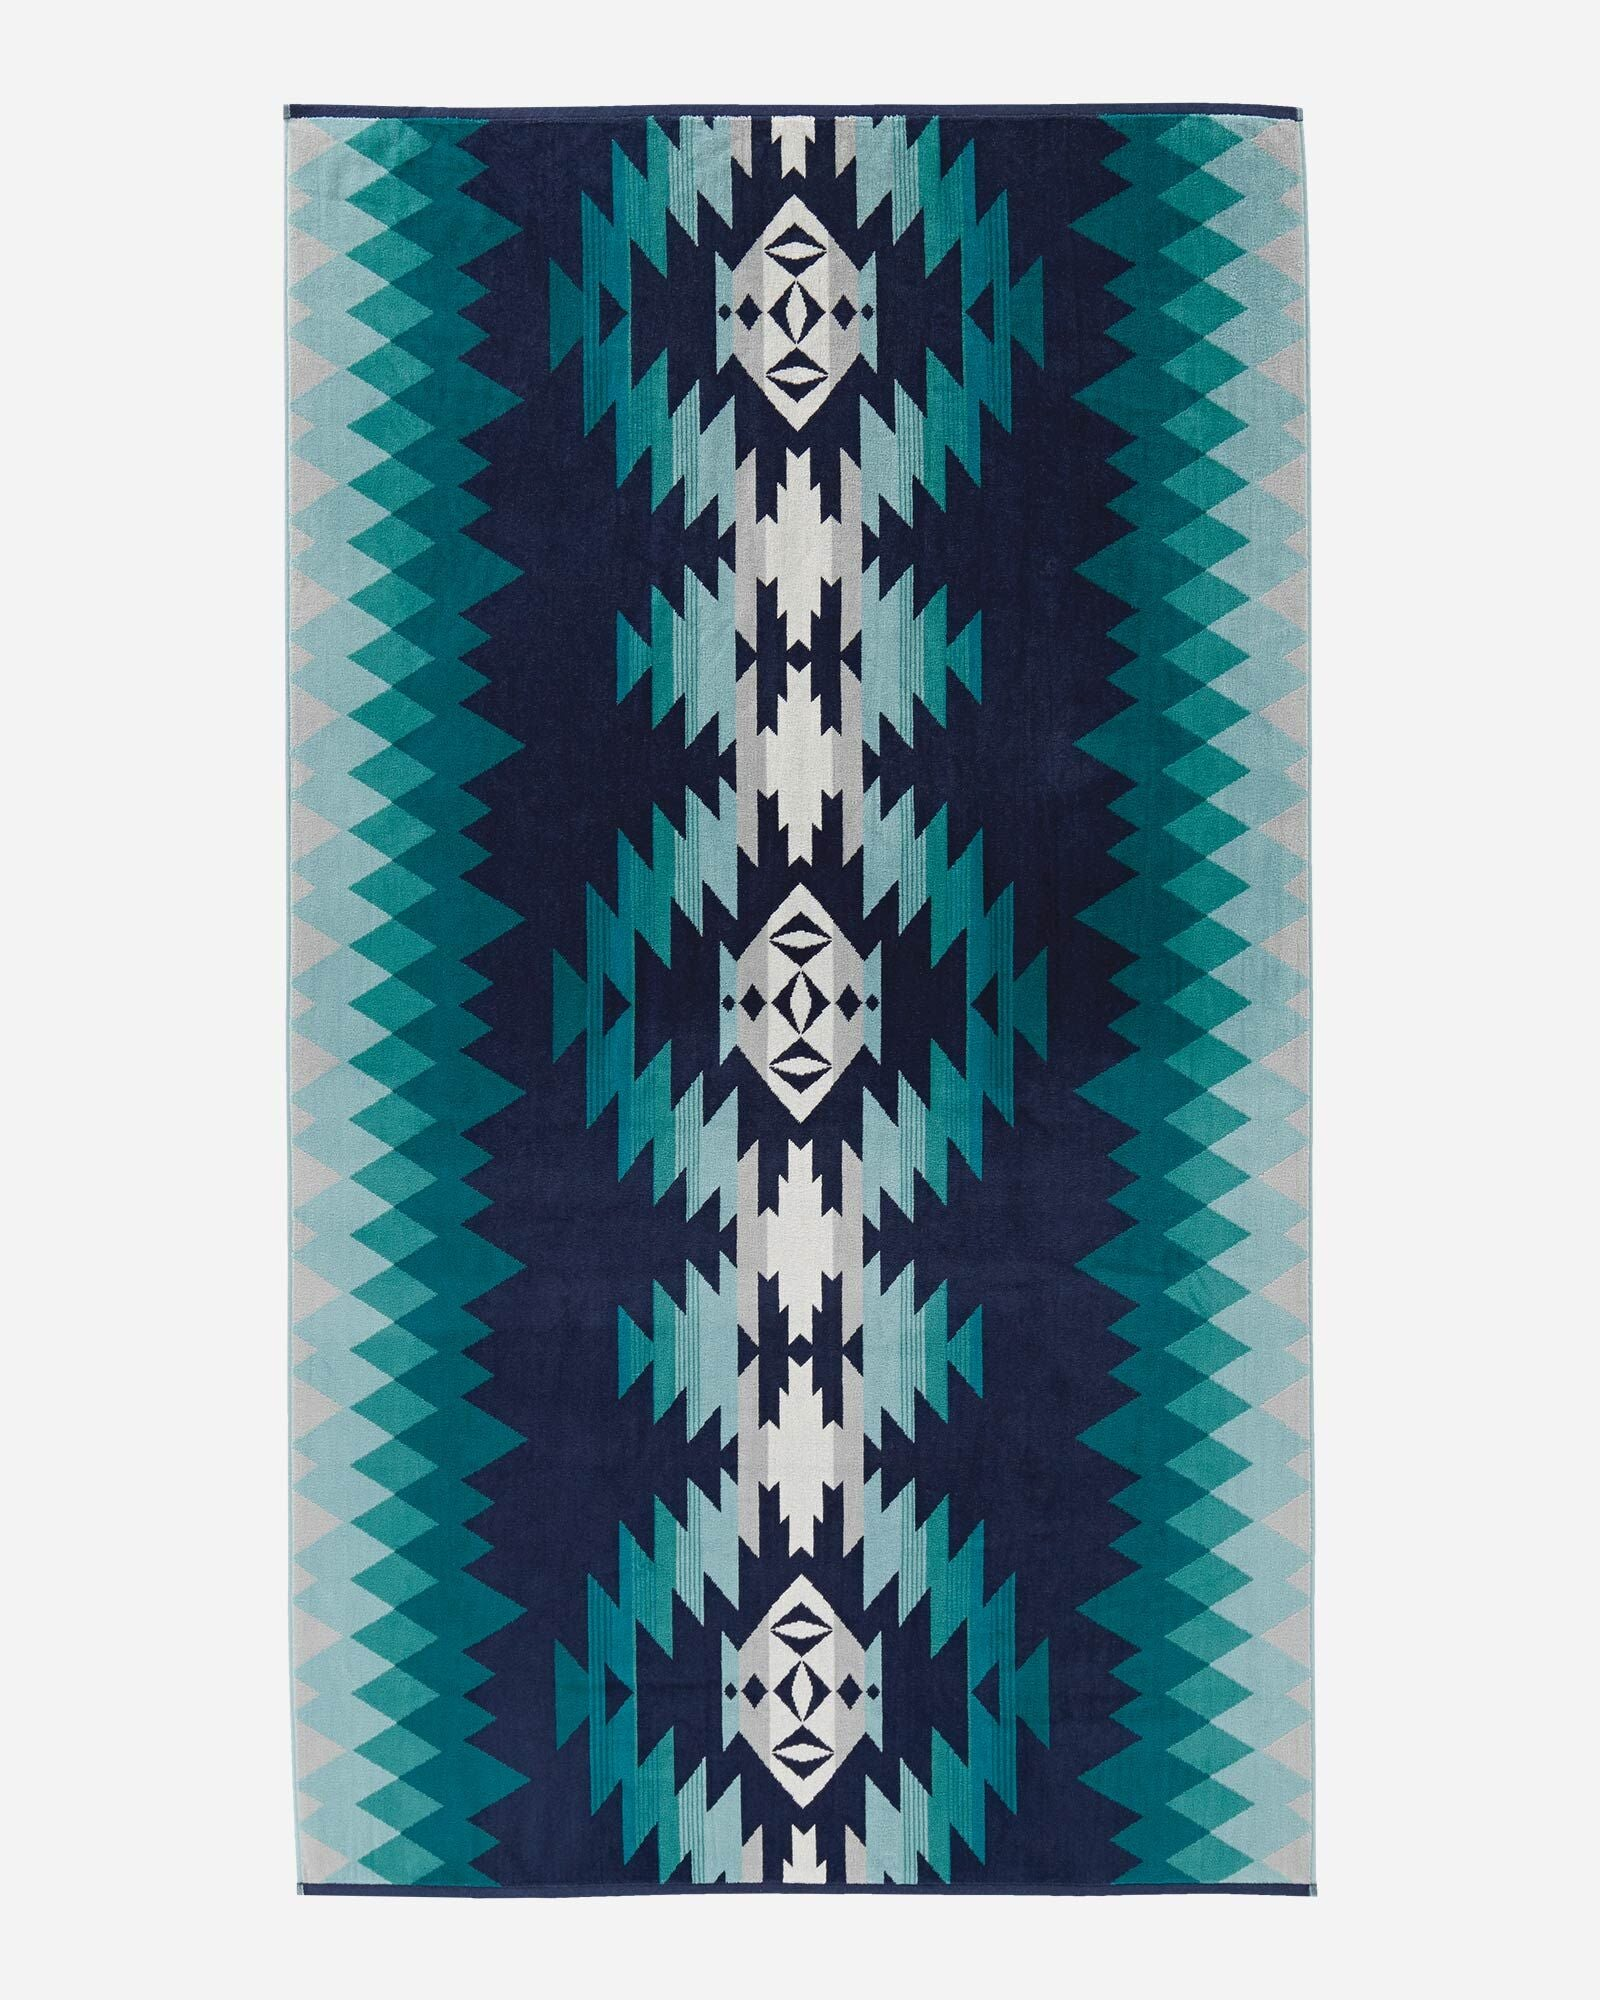 PAPAGO PARK SPA TOWEL - TURQUOISE - Tankfarm & Co.